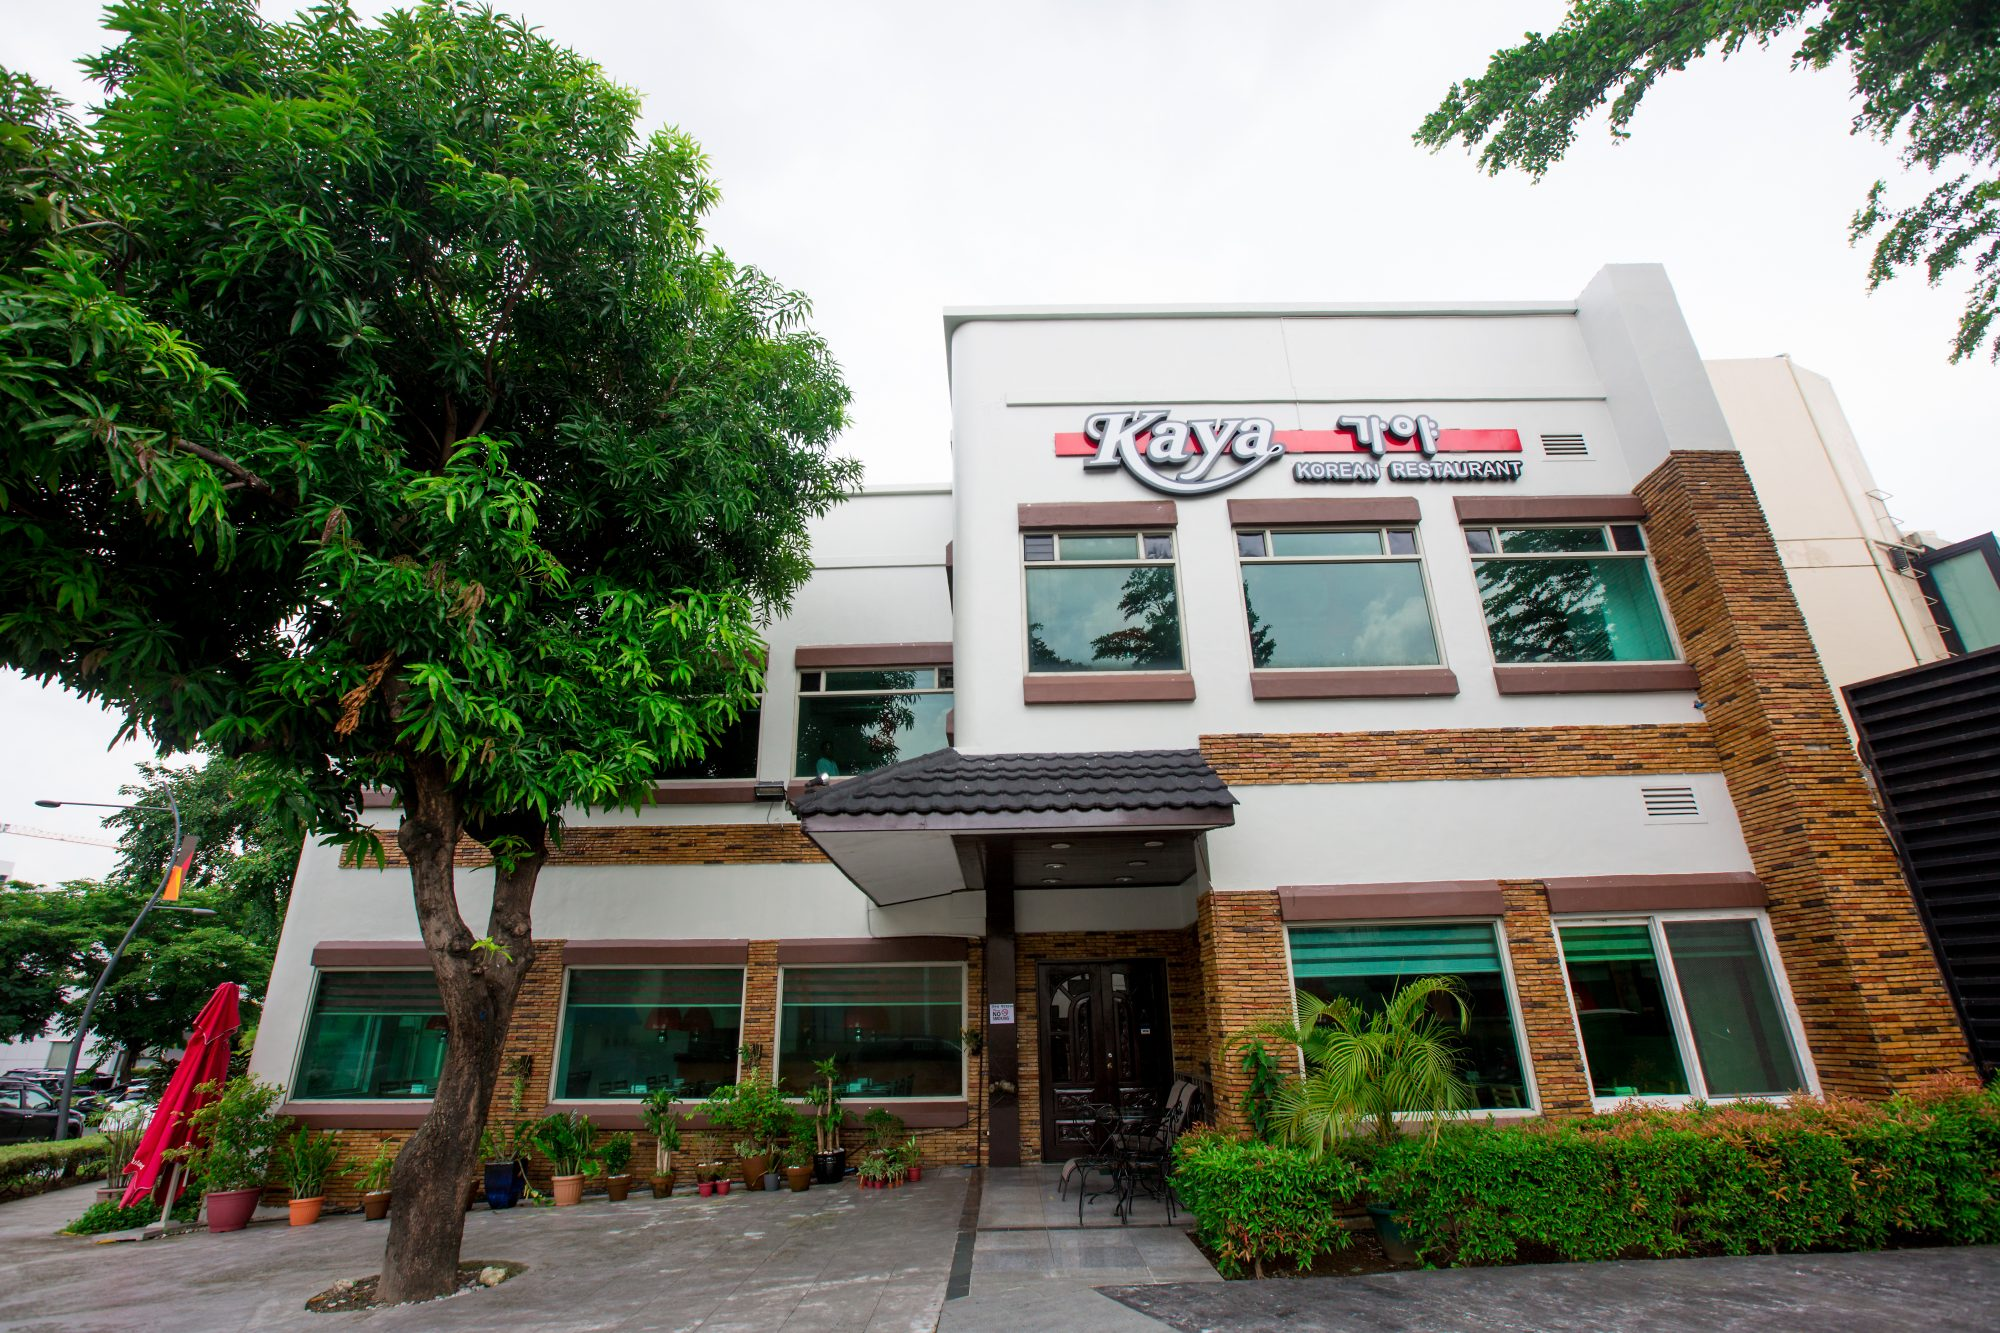 Kaya Korean Restaurant Westgate Alabang